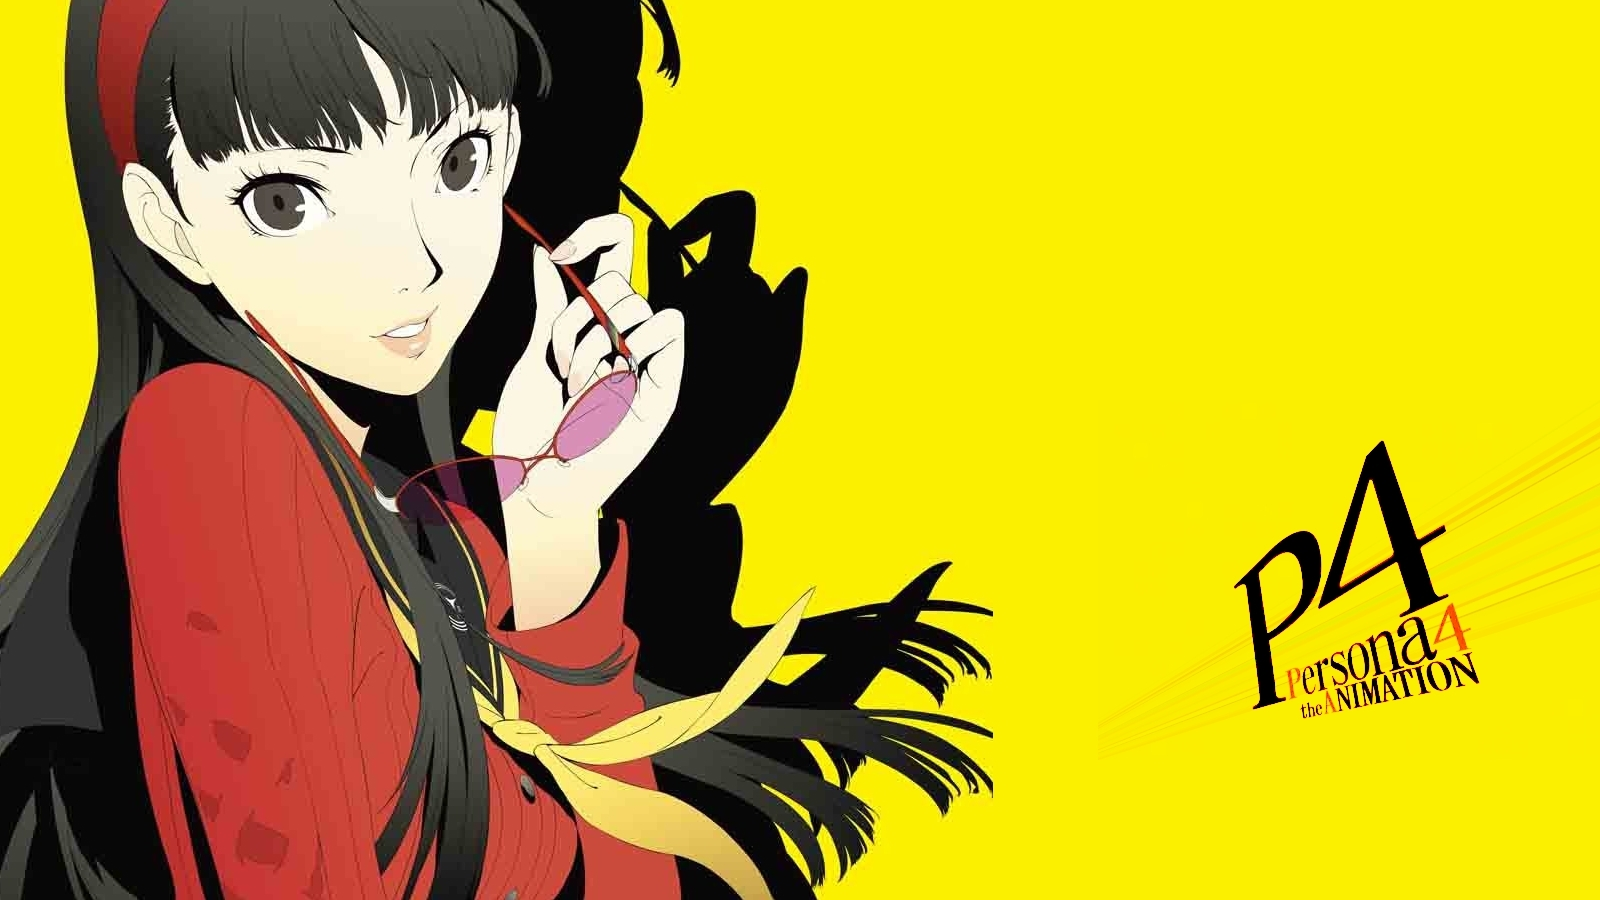 Persona 4 The Animation Wallpaper Reach Out to The Burnt Bread